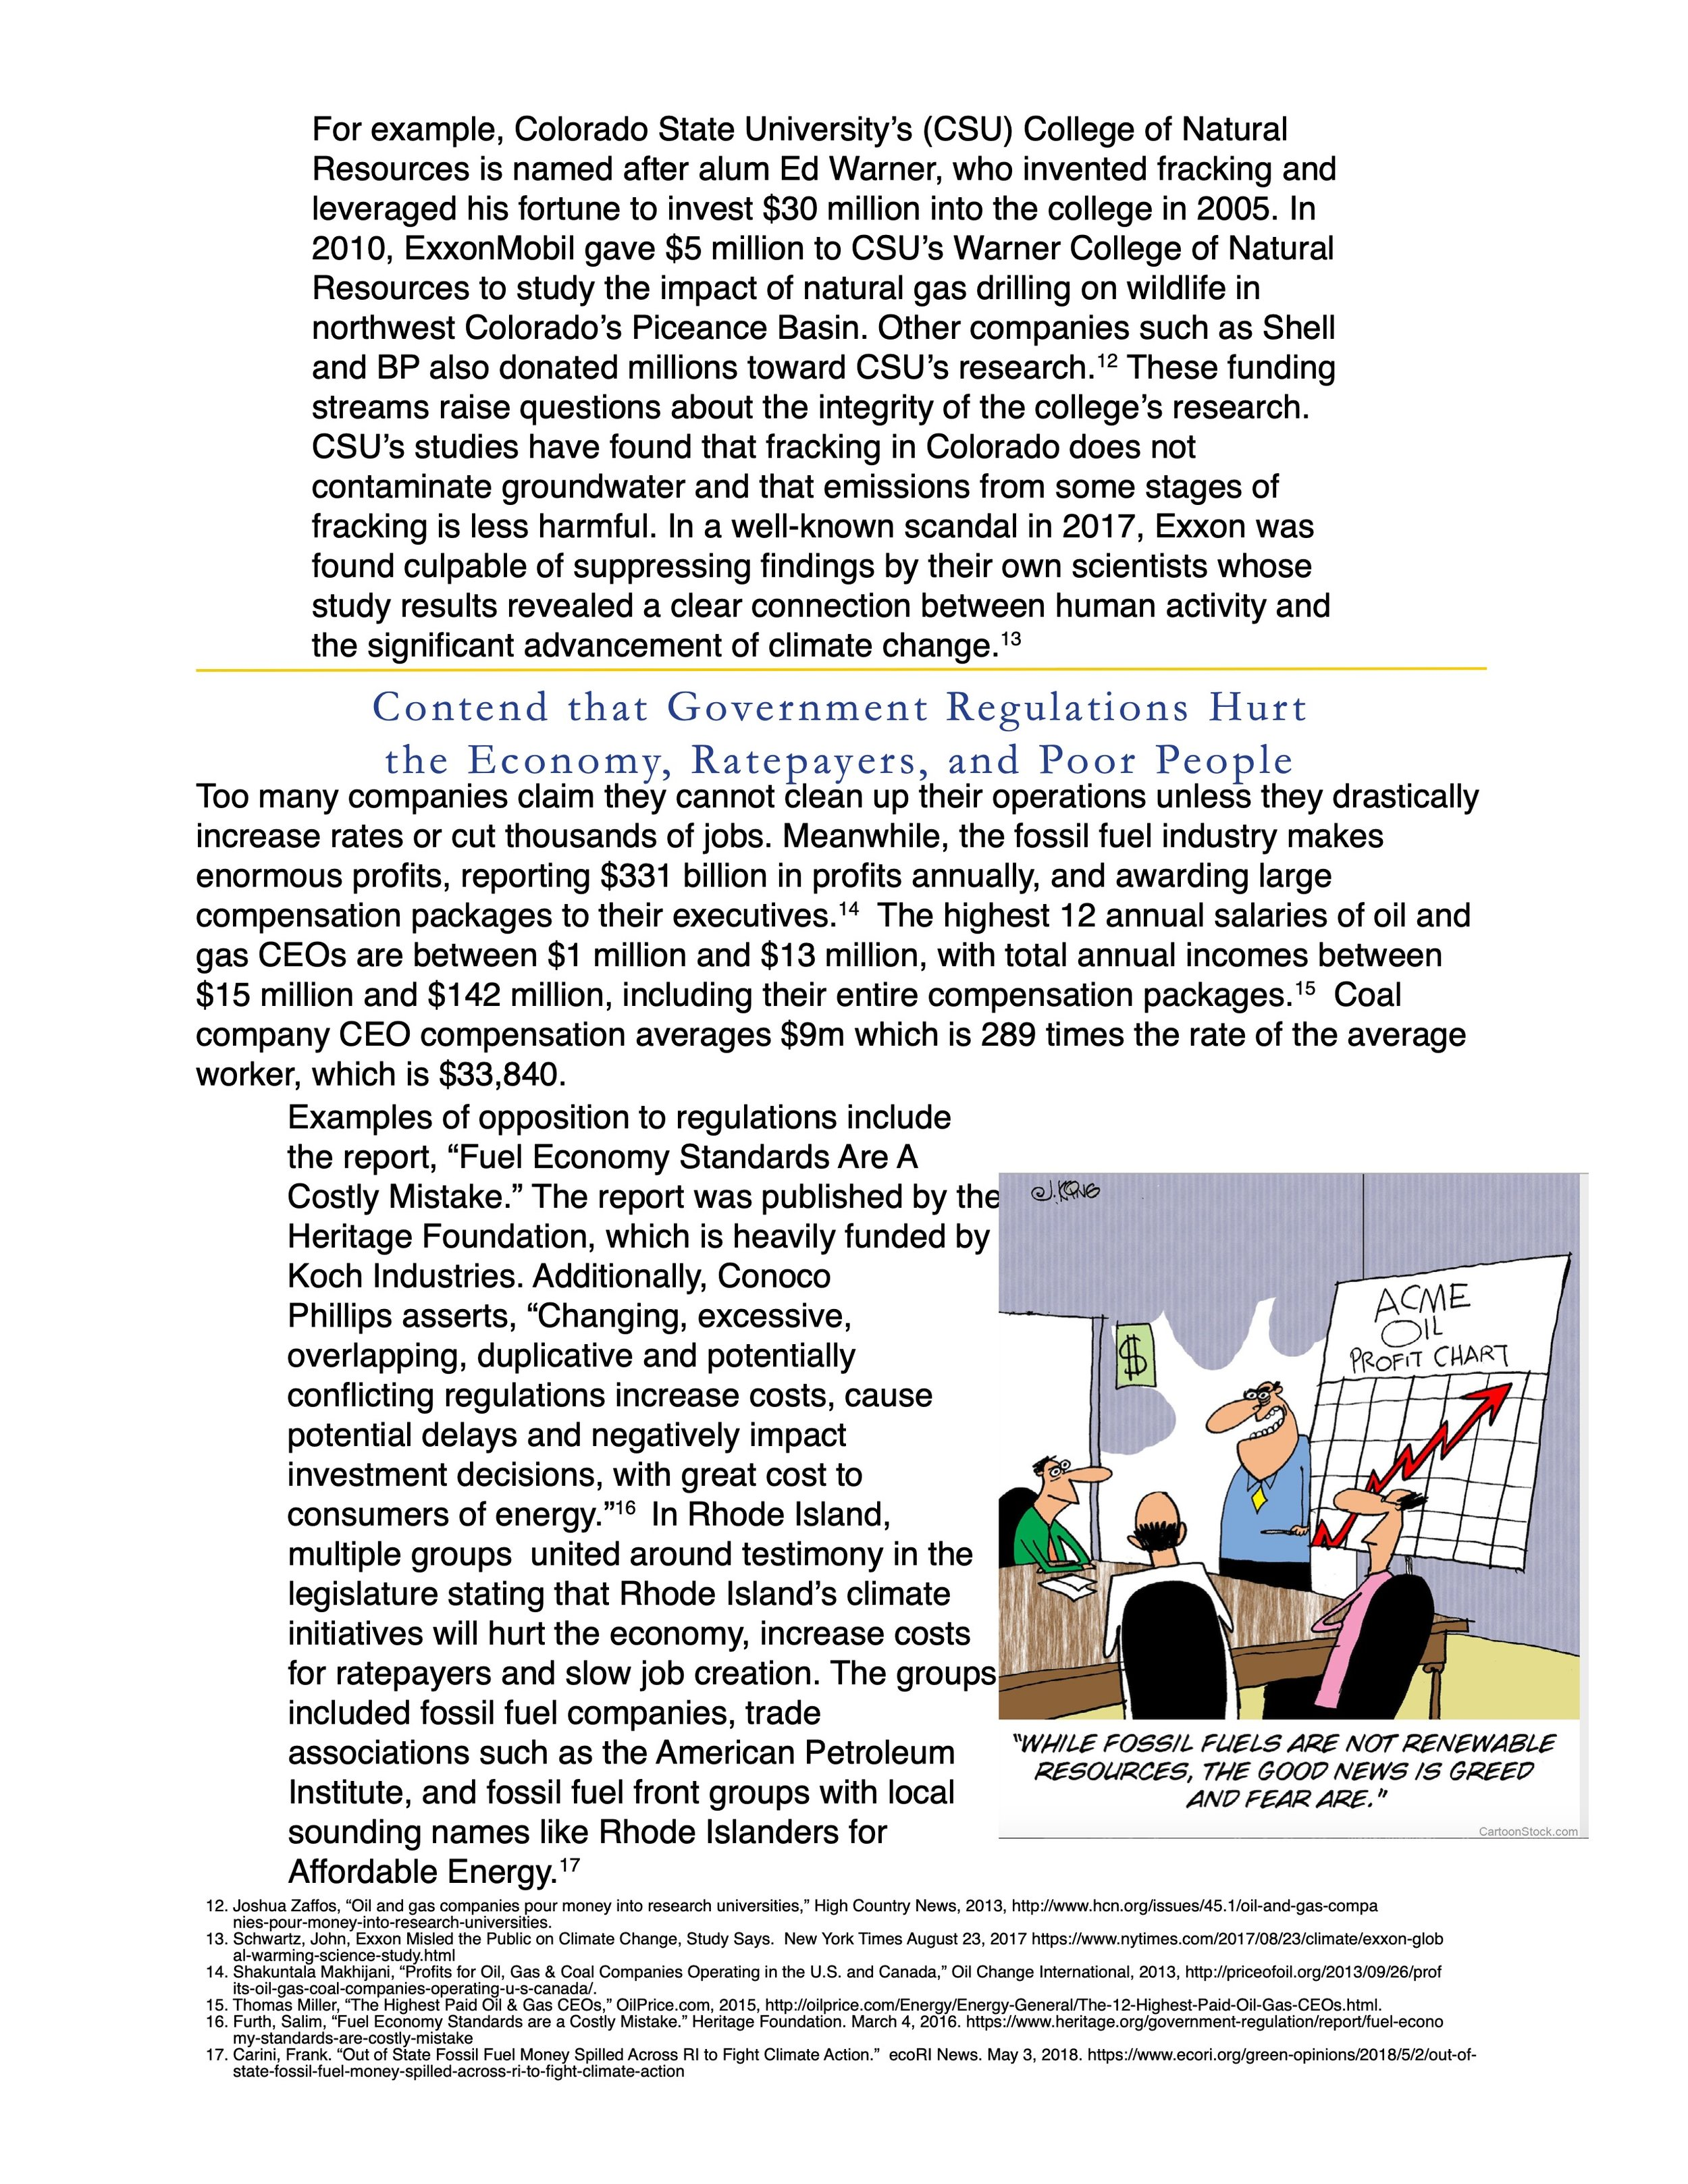 Fossil-Fueled-Foolery-An-Illustrated-Primer-on-the-Top-10-Manipulation-Tactics-of-the-Fossil-Fuel-Industry 8.jpeg